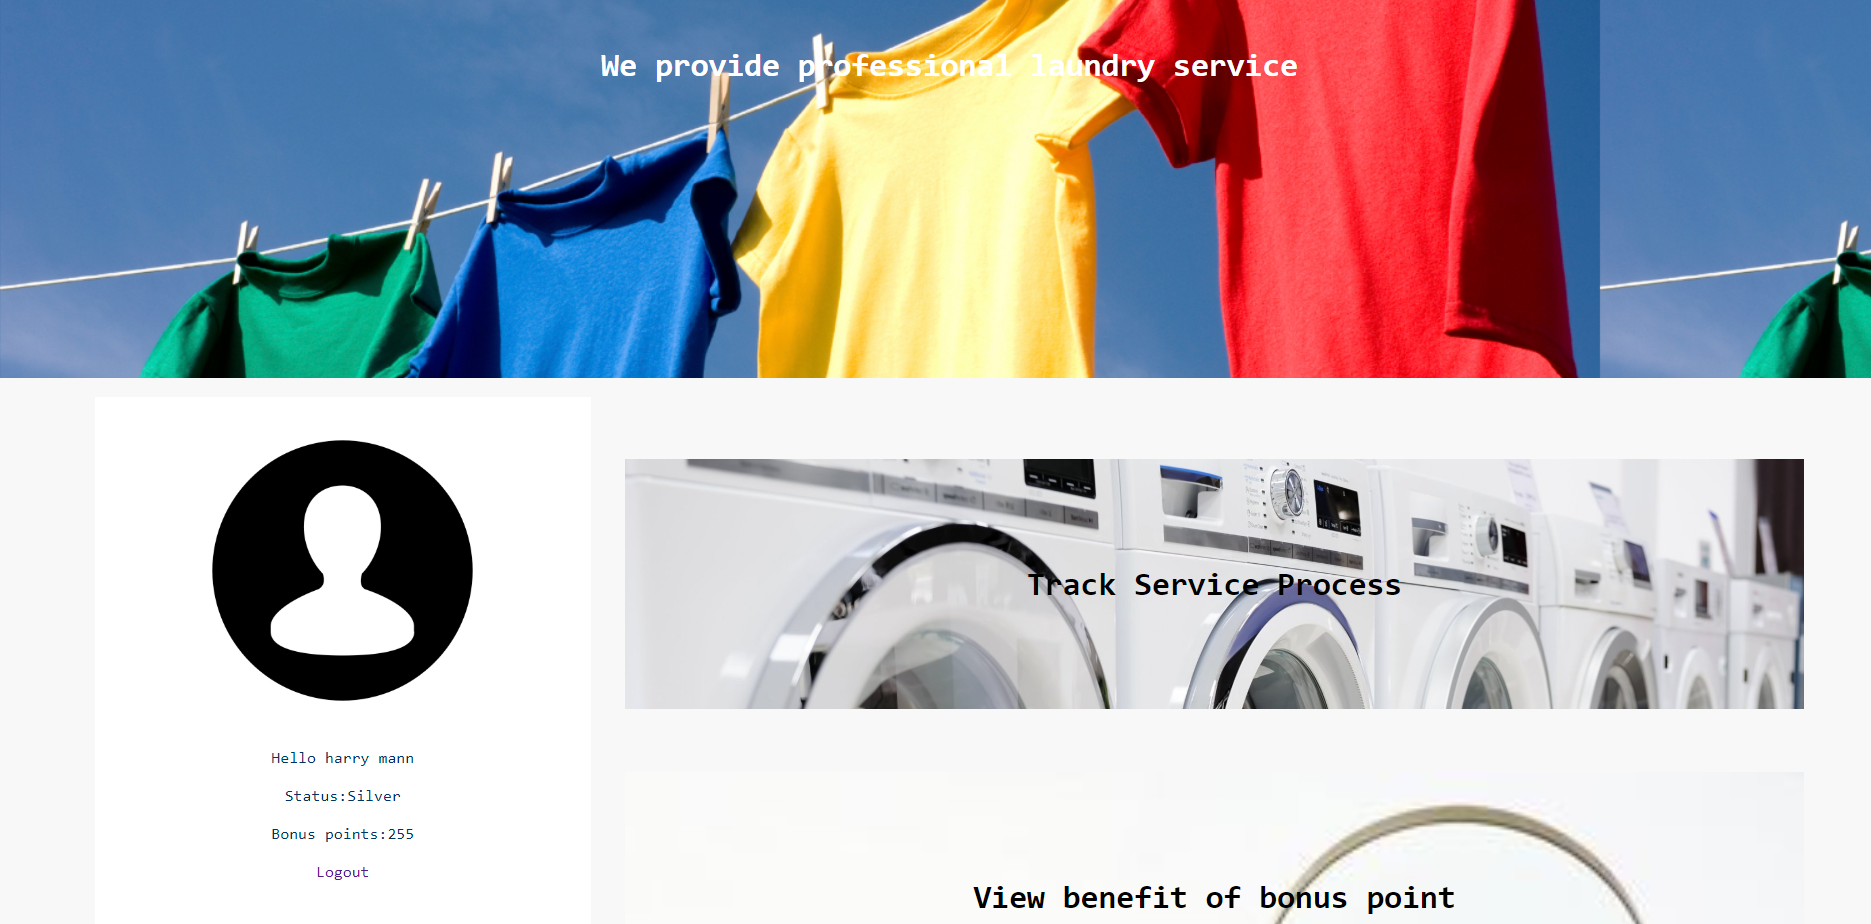 image of Simple Laundry System